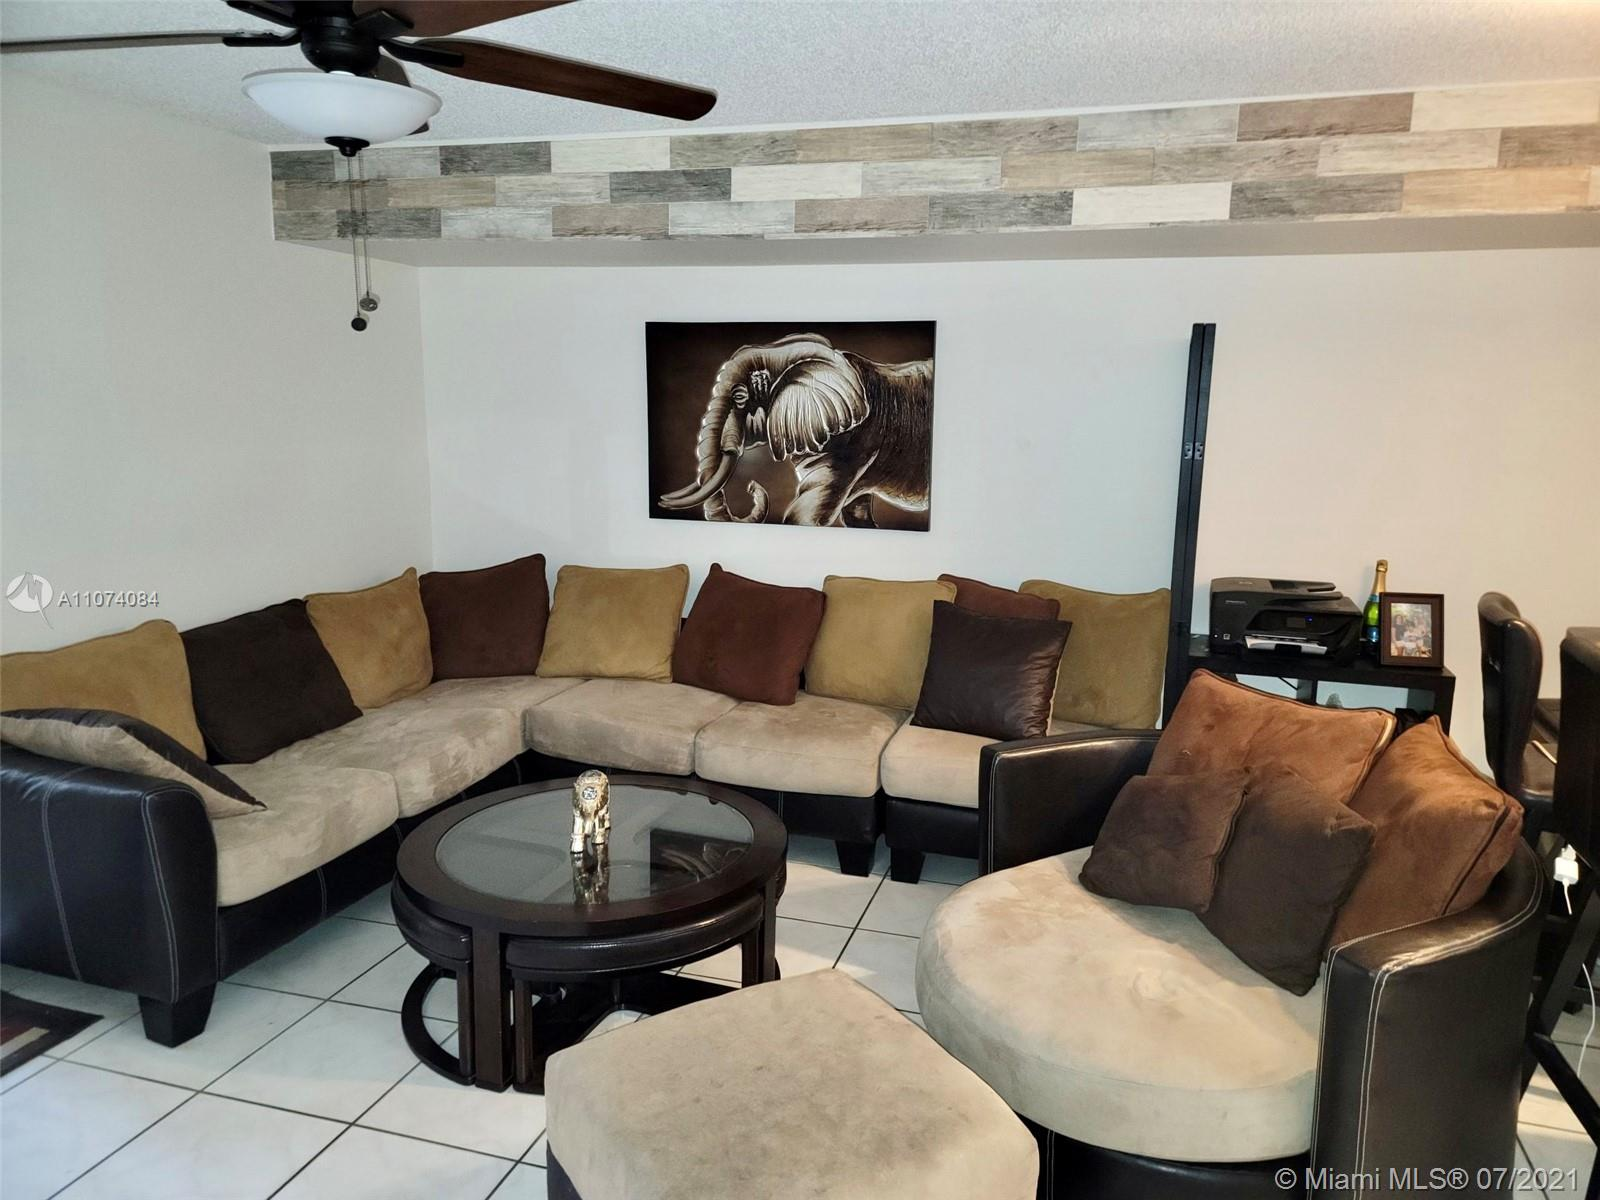 EXCELLENT SAN MARINO COVE 2/2 and a half WITH ONE CAR GARAGE.  The perfect family home. Updated Kitchen, half bath, and master Bathroom. Open living room kitchen and dining room area.   Well lit, spacious.  New stacked washer/dryer.  Screened in patio next to the community pool.  Low monthly HOA, HOA covers roof repairs CANNOT LEASE FOR THE FIRST TWO YEARS.  Easy to show, use show assist.  Note: **The owner of the property will be attending the open house** Sunday 25, 2021